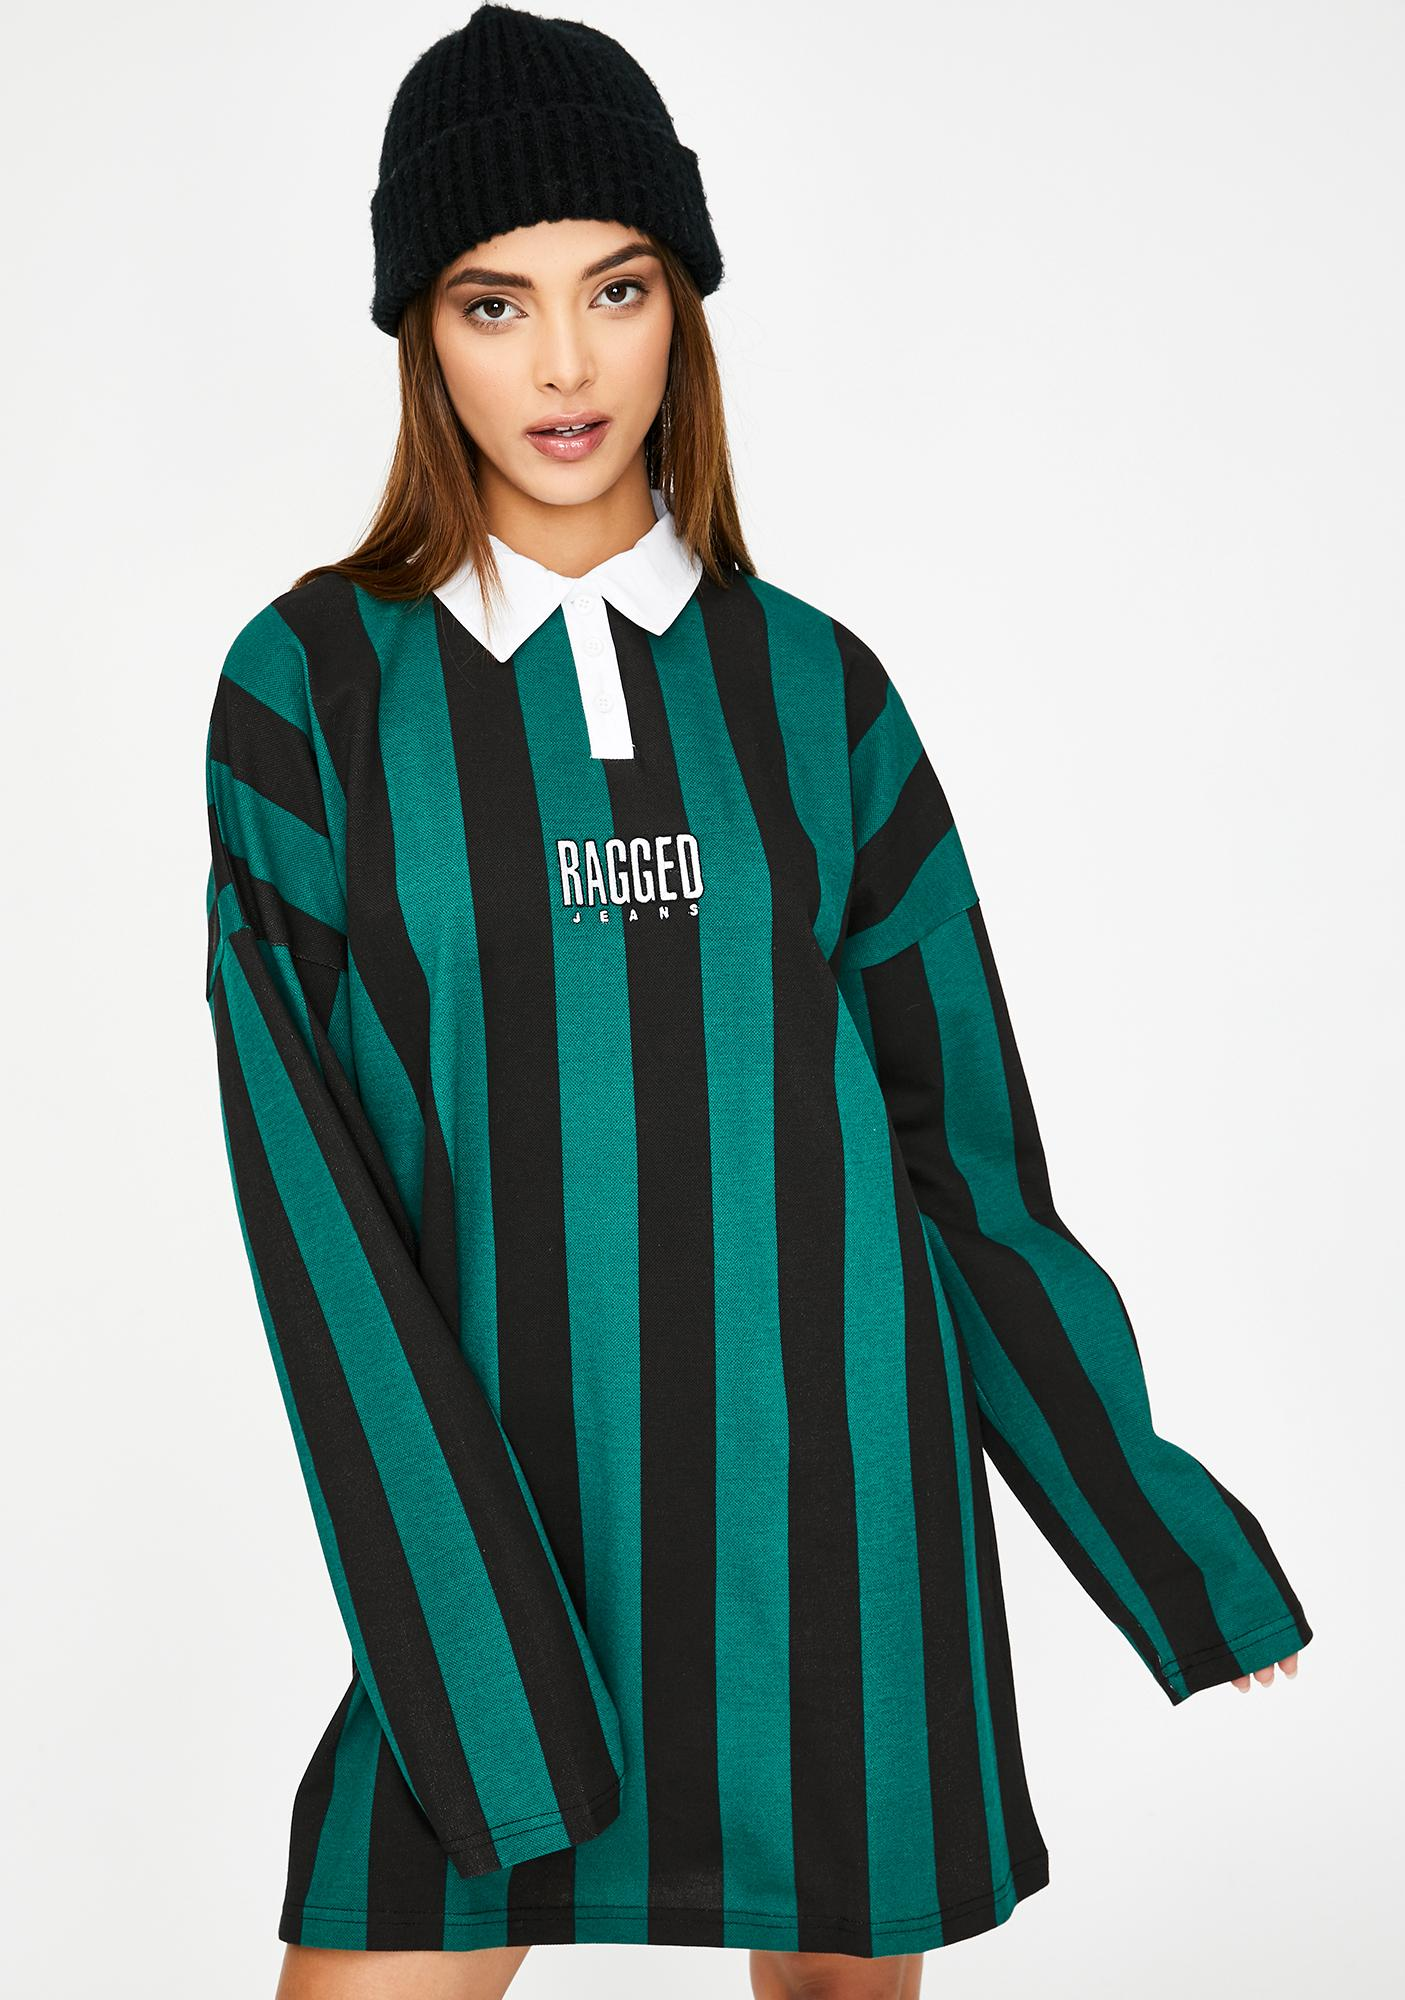 The Ragged Priest Elevator Polo Dress